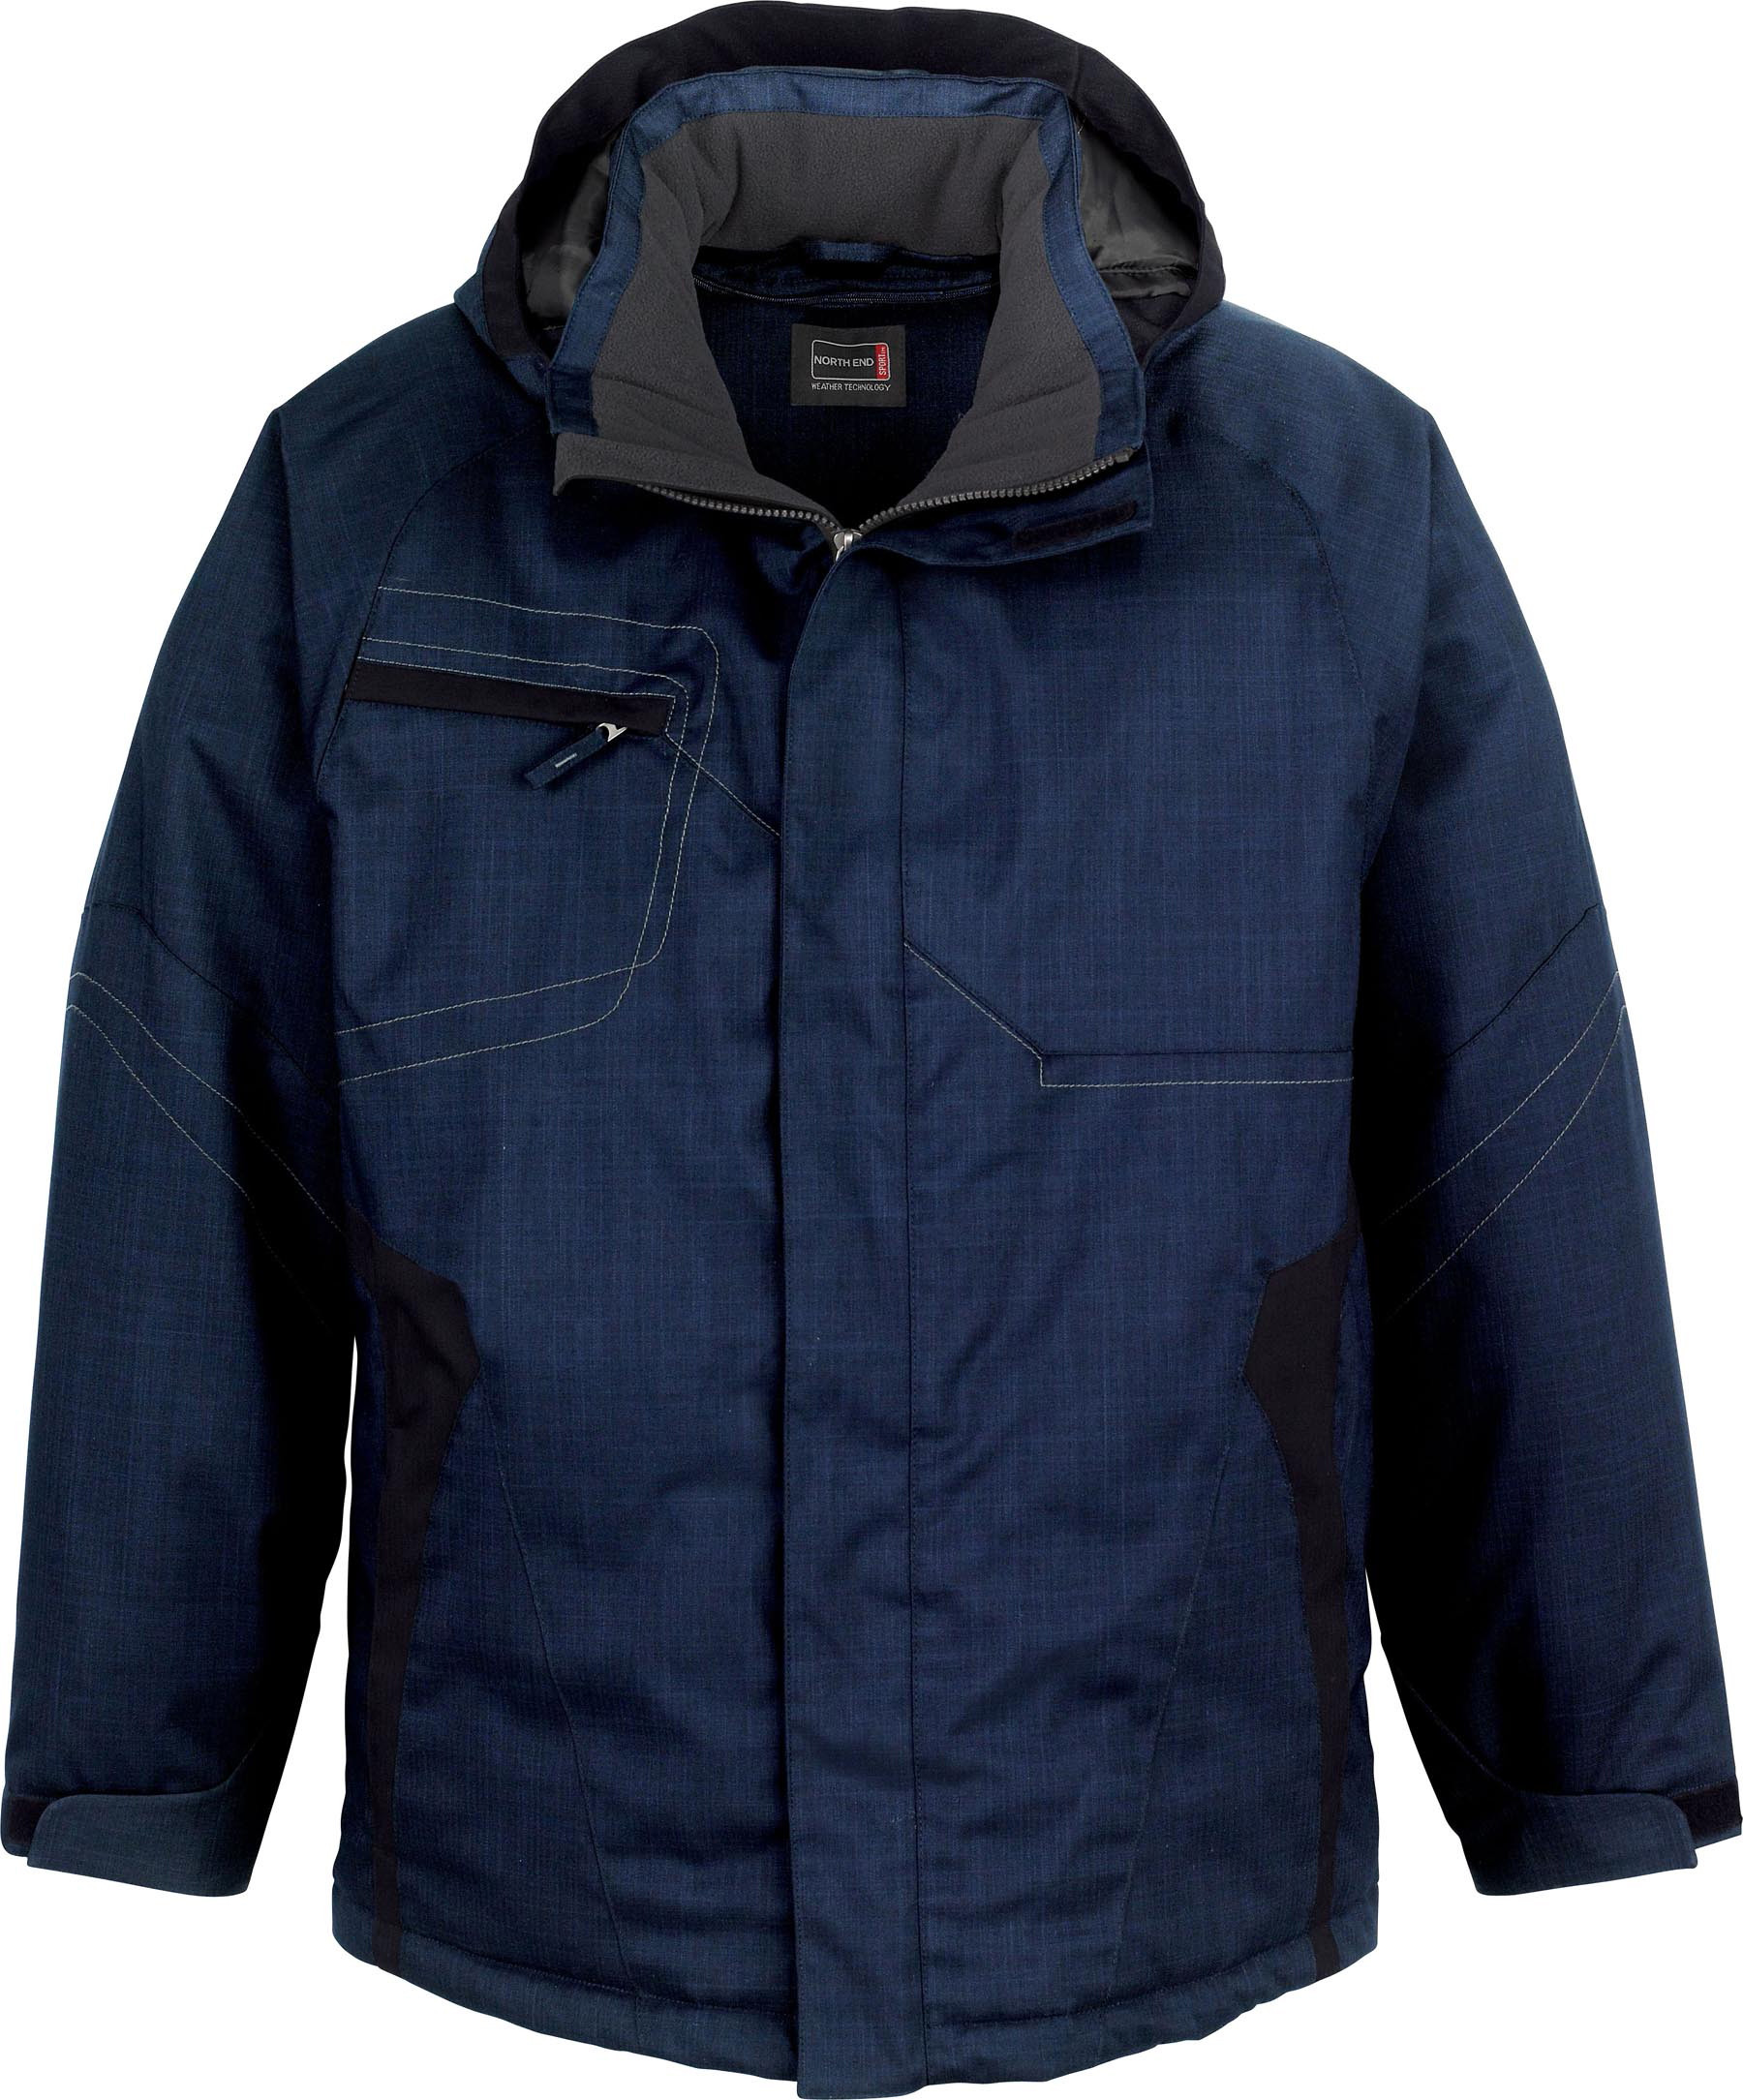 Ash City UTK 3 Warm.Logik 88643 - Altitude Men's Seam-...